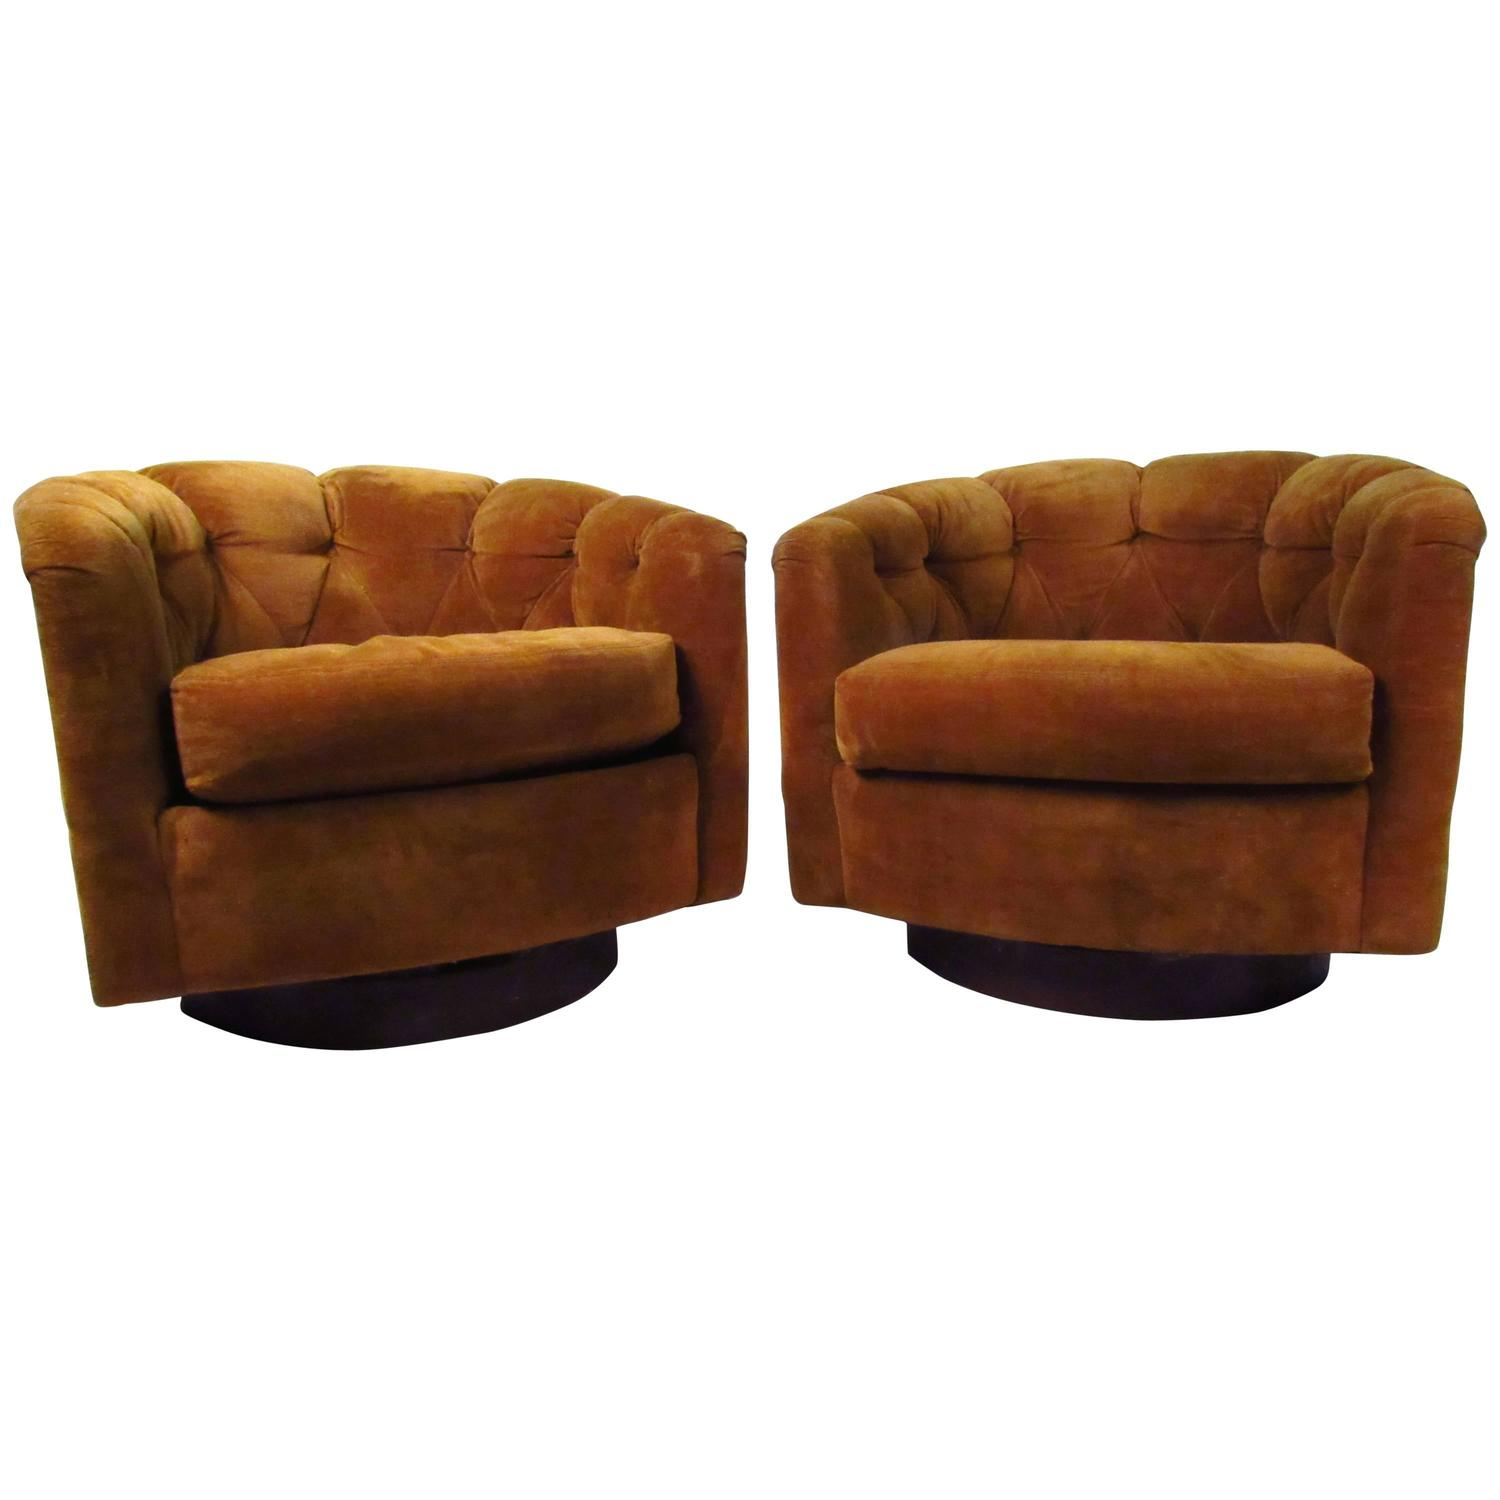 Pair of Mid Century Tufted Barrel Back Swivel Lounge Chairs by